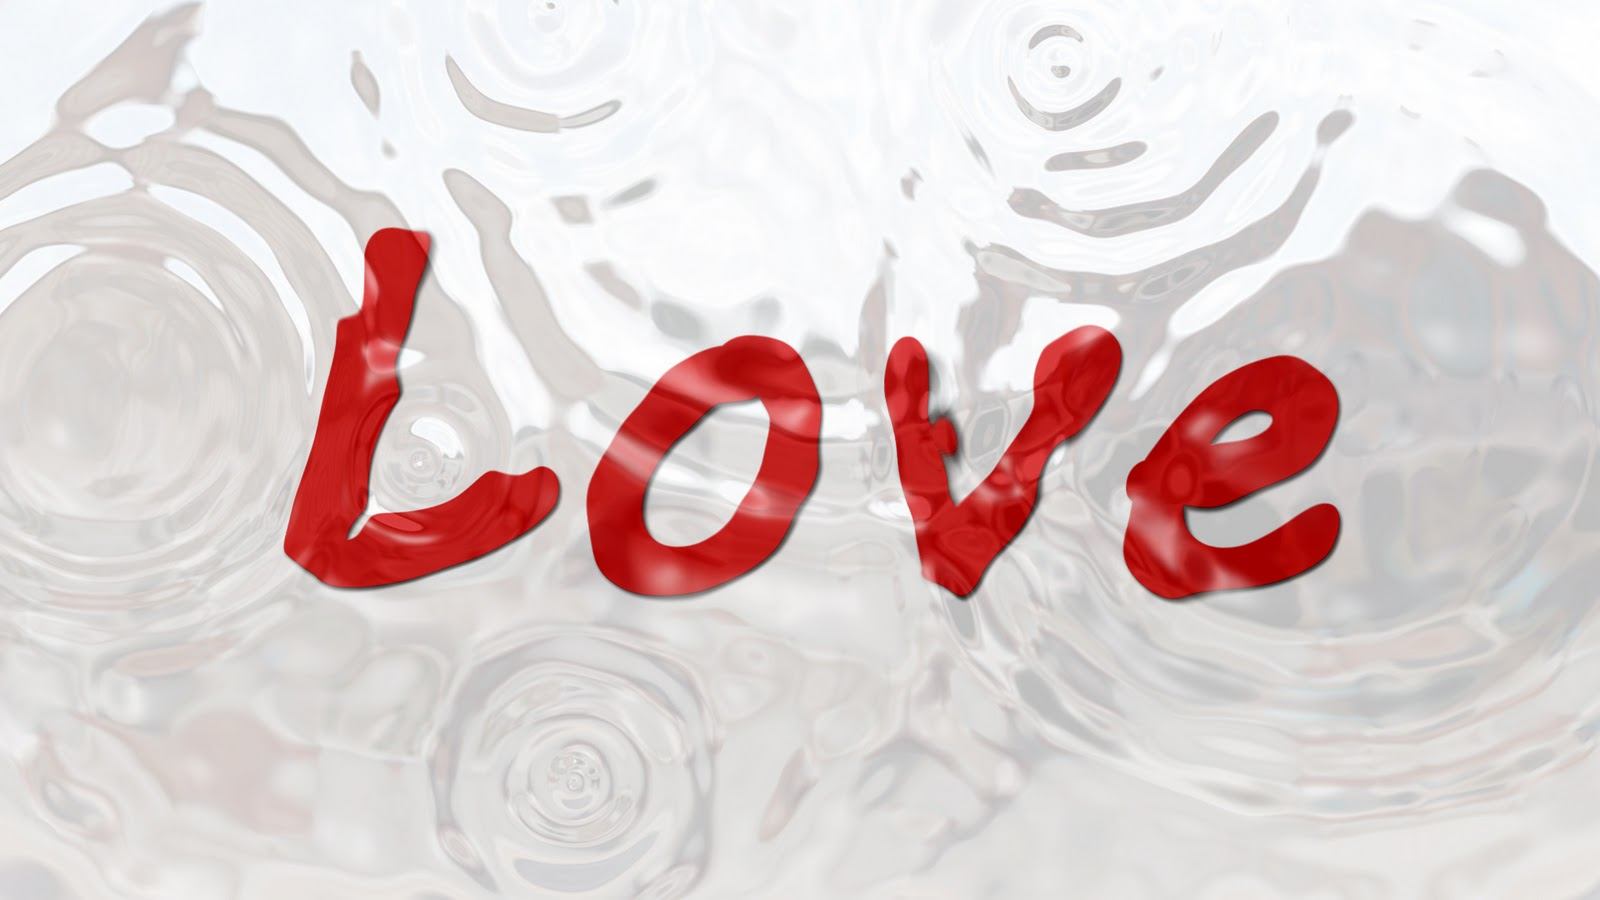 Love Wallpaper With My Name : Desktop Wallpapers,Animals Wallpapers,Flowers Wallpapers, Birds Wallpapers ,Sad Poetry ...